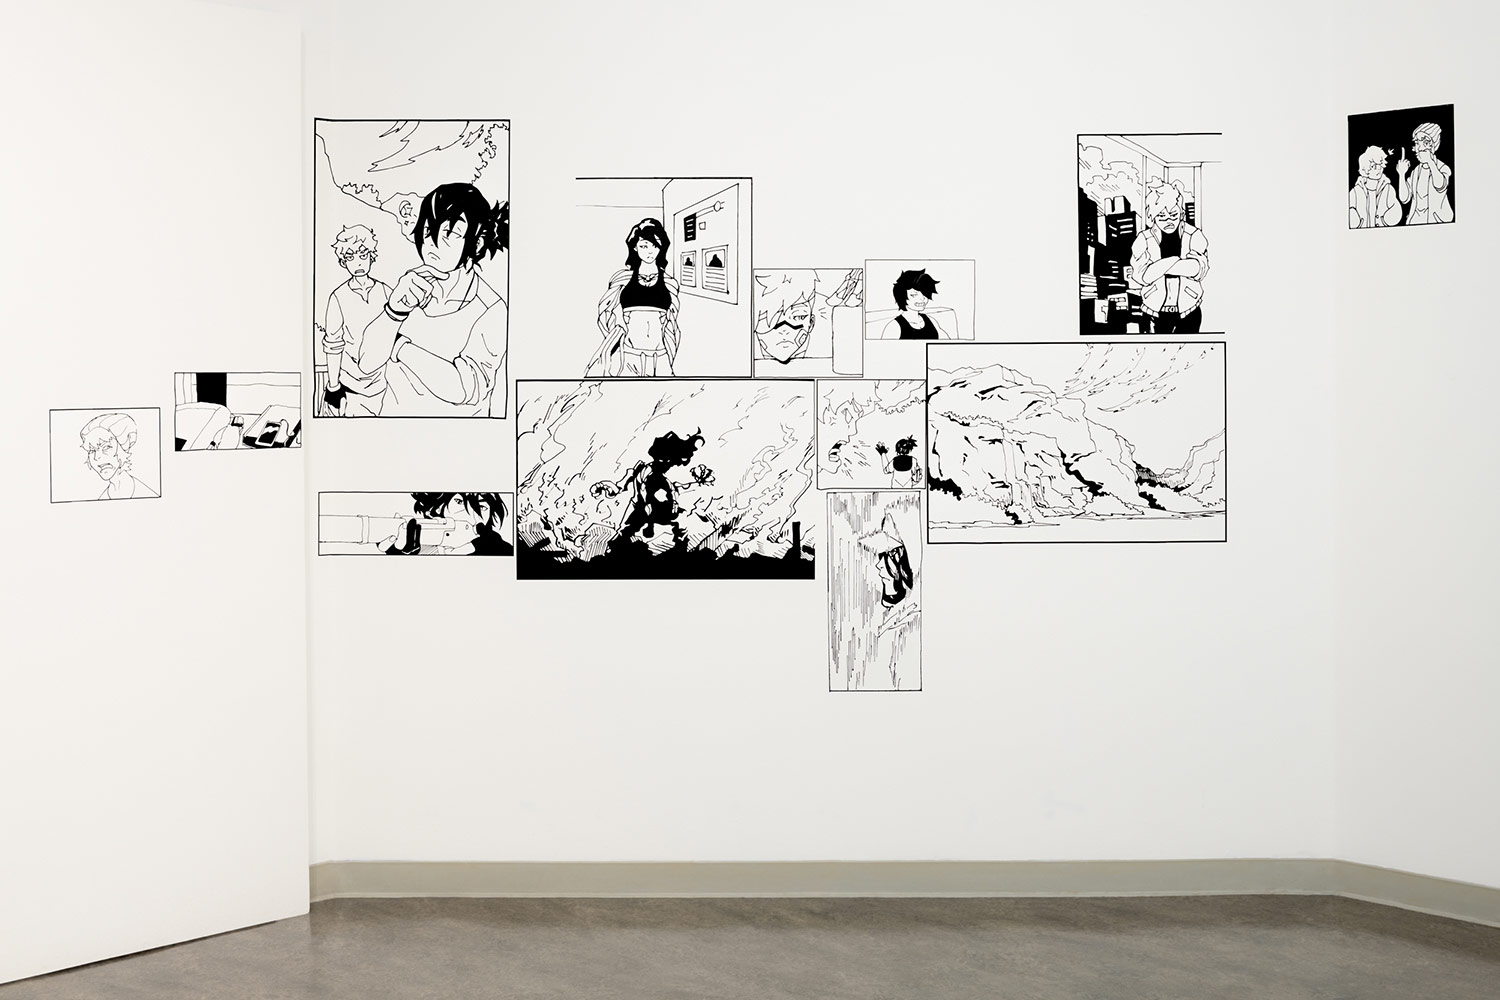 Photograph of a multi-panel comic rendered in vinyl installed in the Vachon Gallery